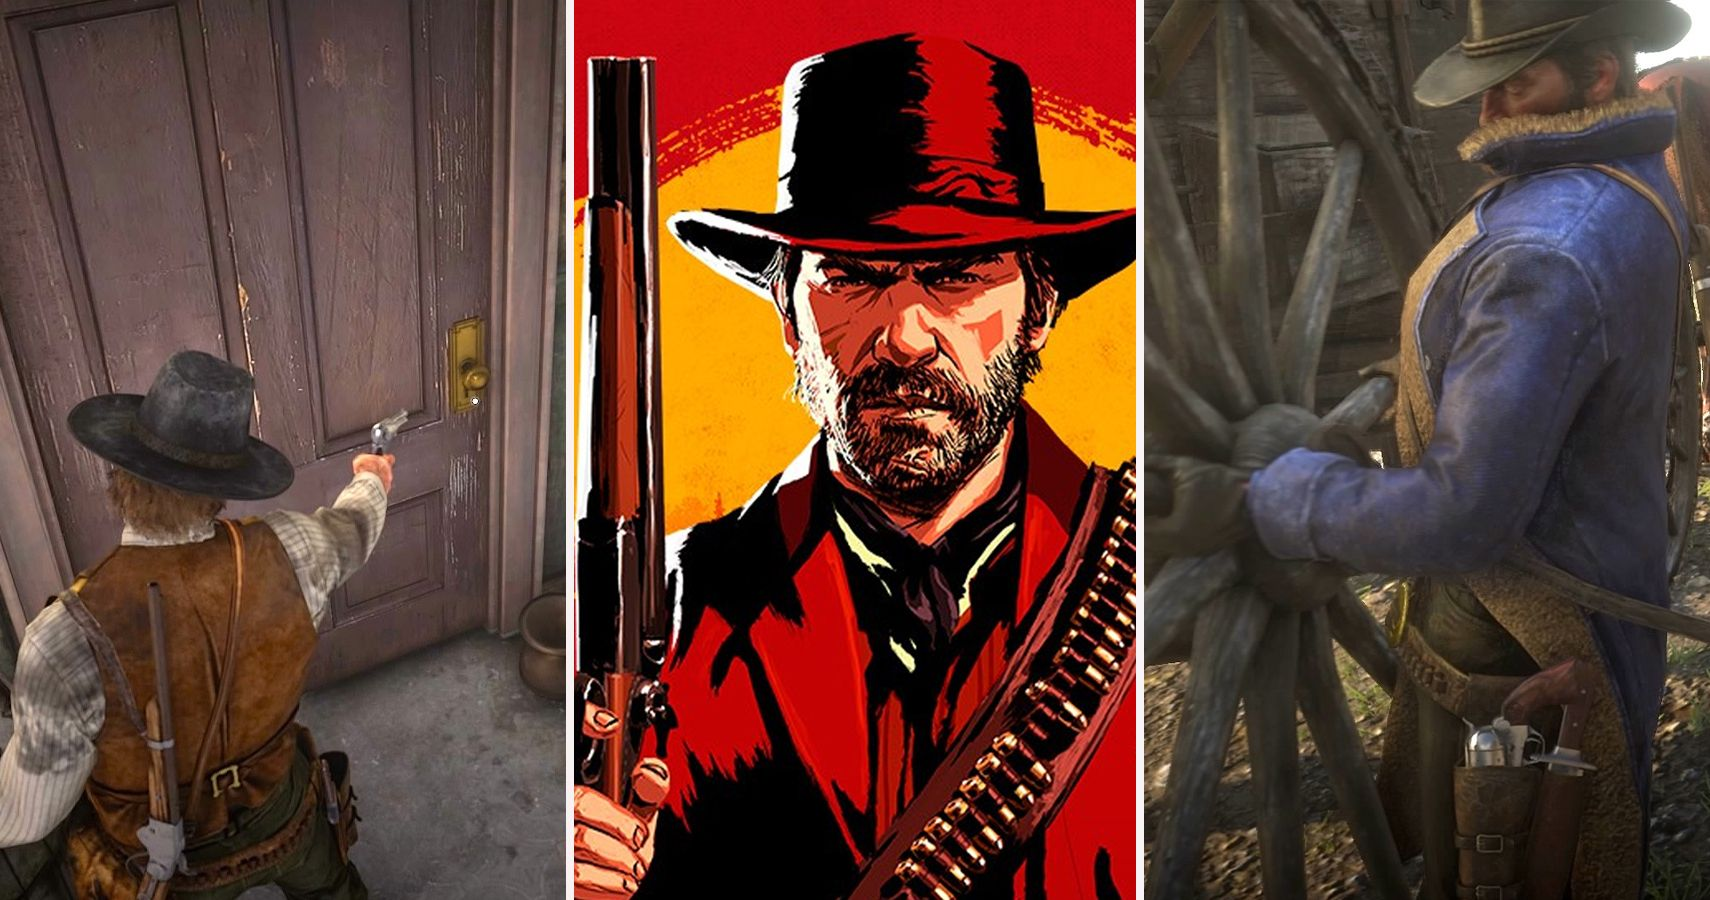 f0a6cb79419 25 Things That Make No Sense About Red Dead Redemption 2